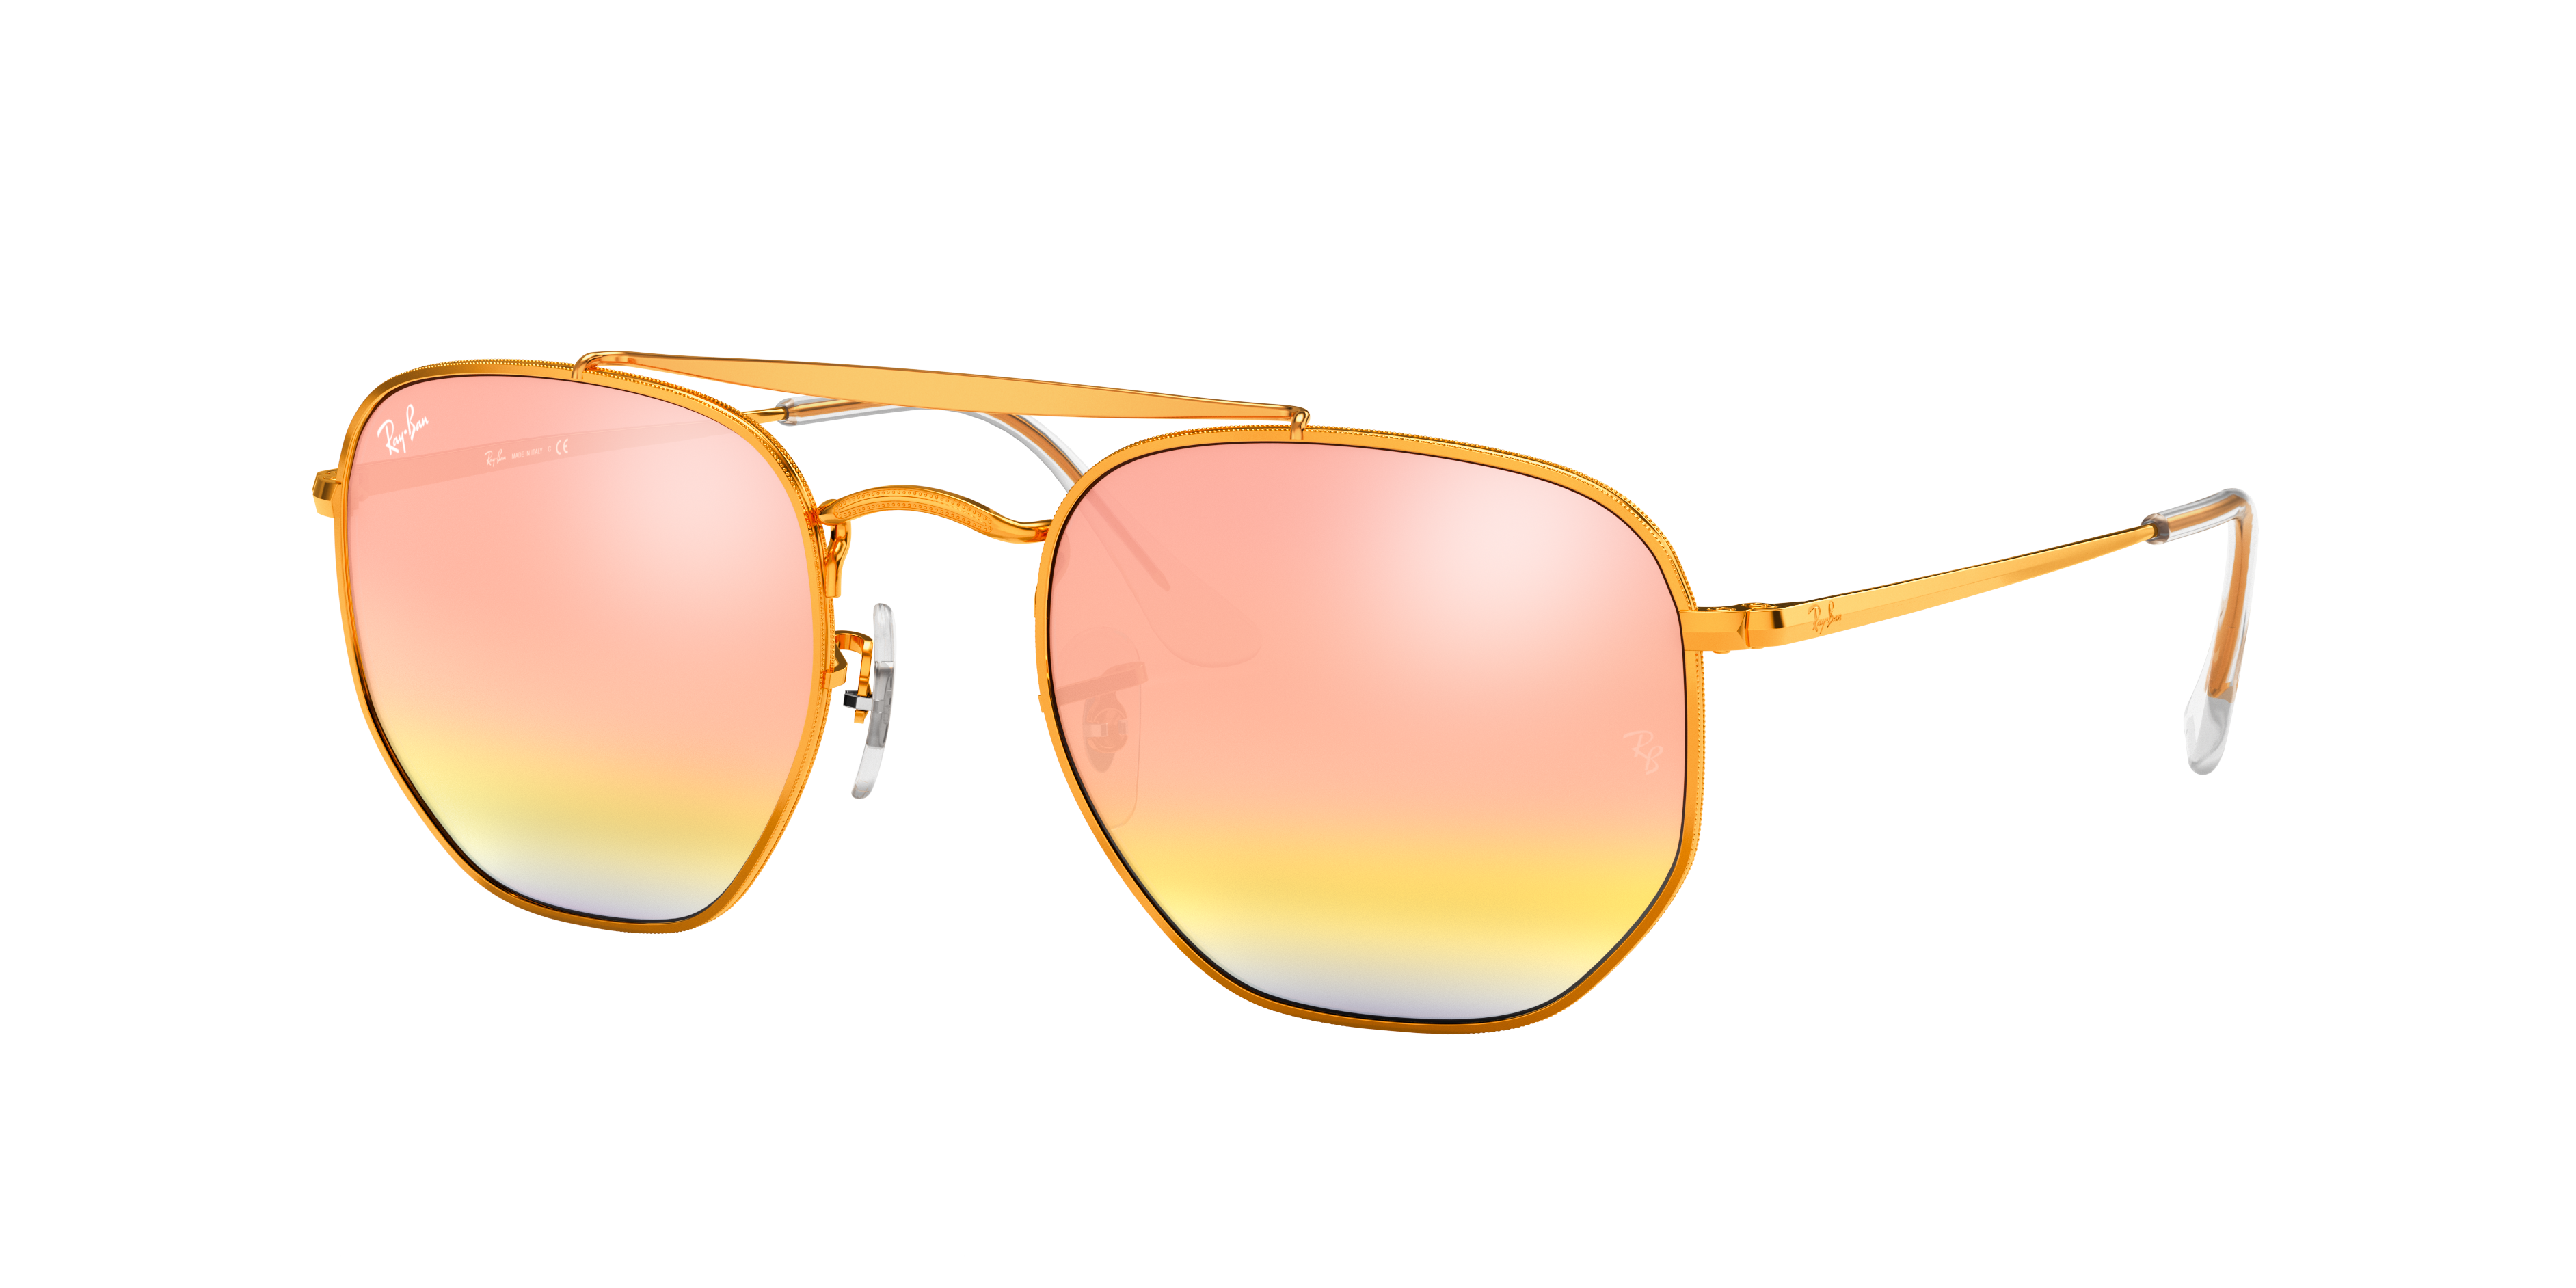 Ray-Ban Marshal Bronze-Copper, Pink Lenses - RB3648